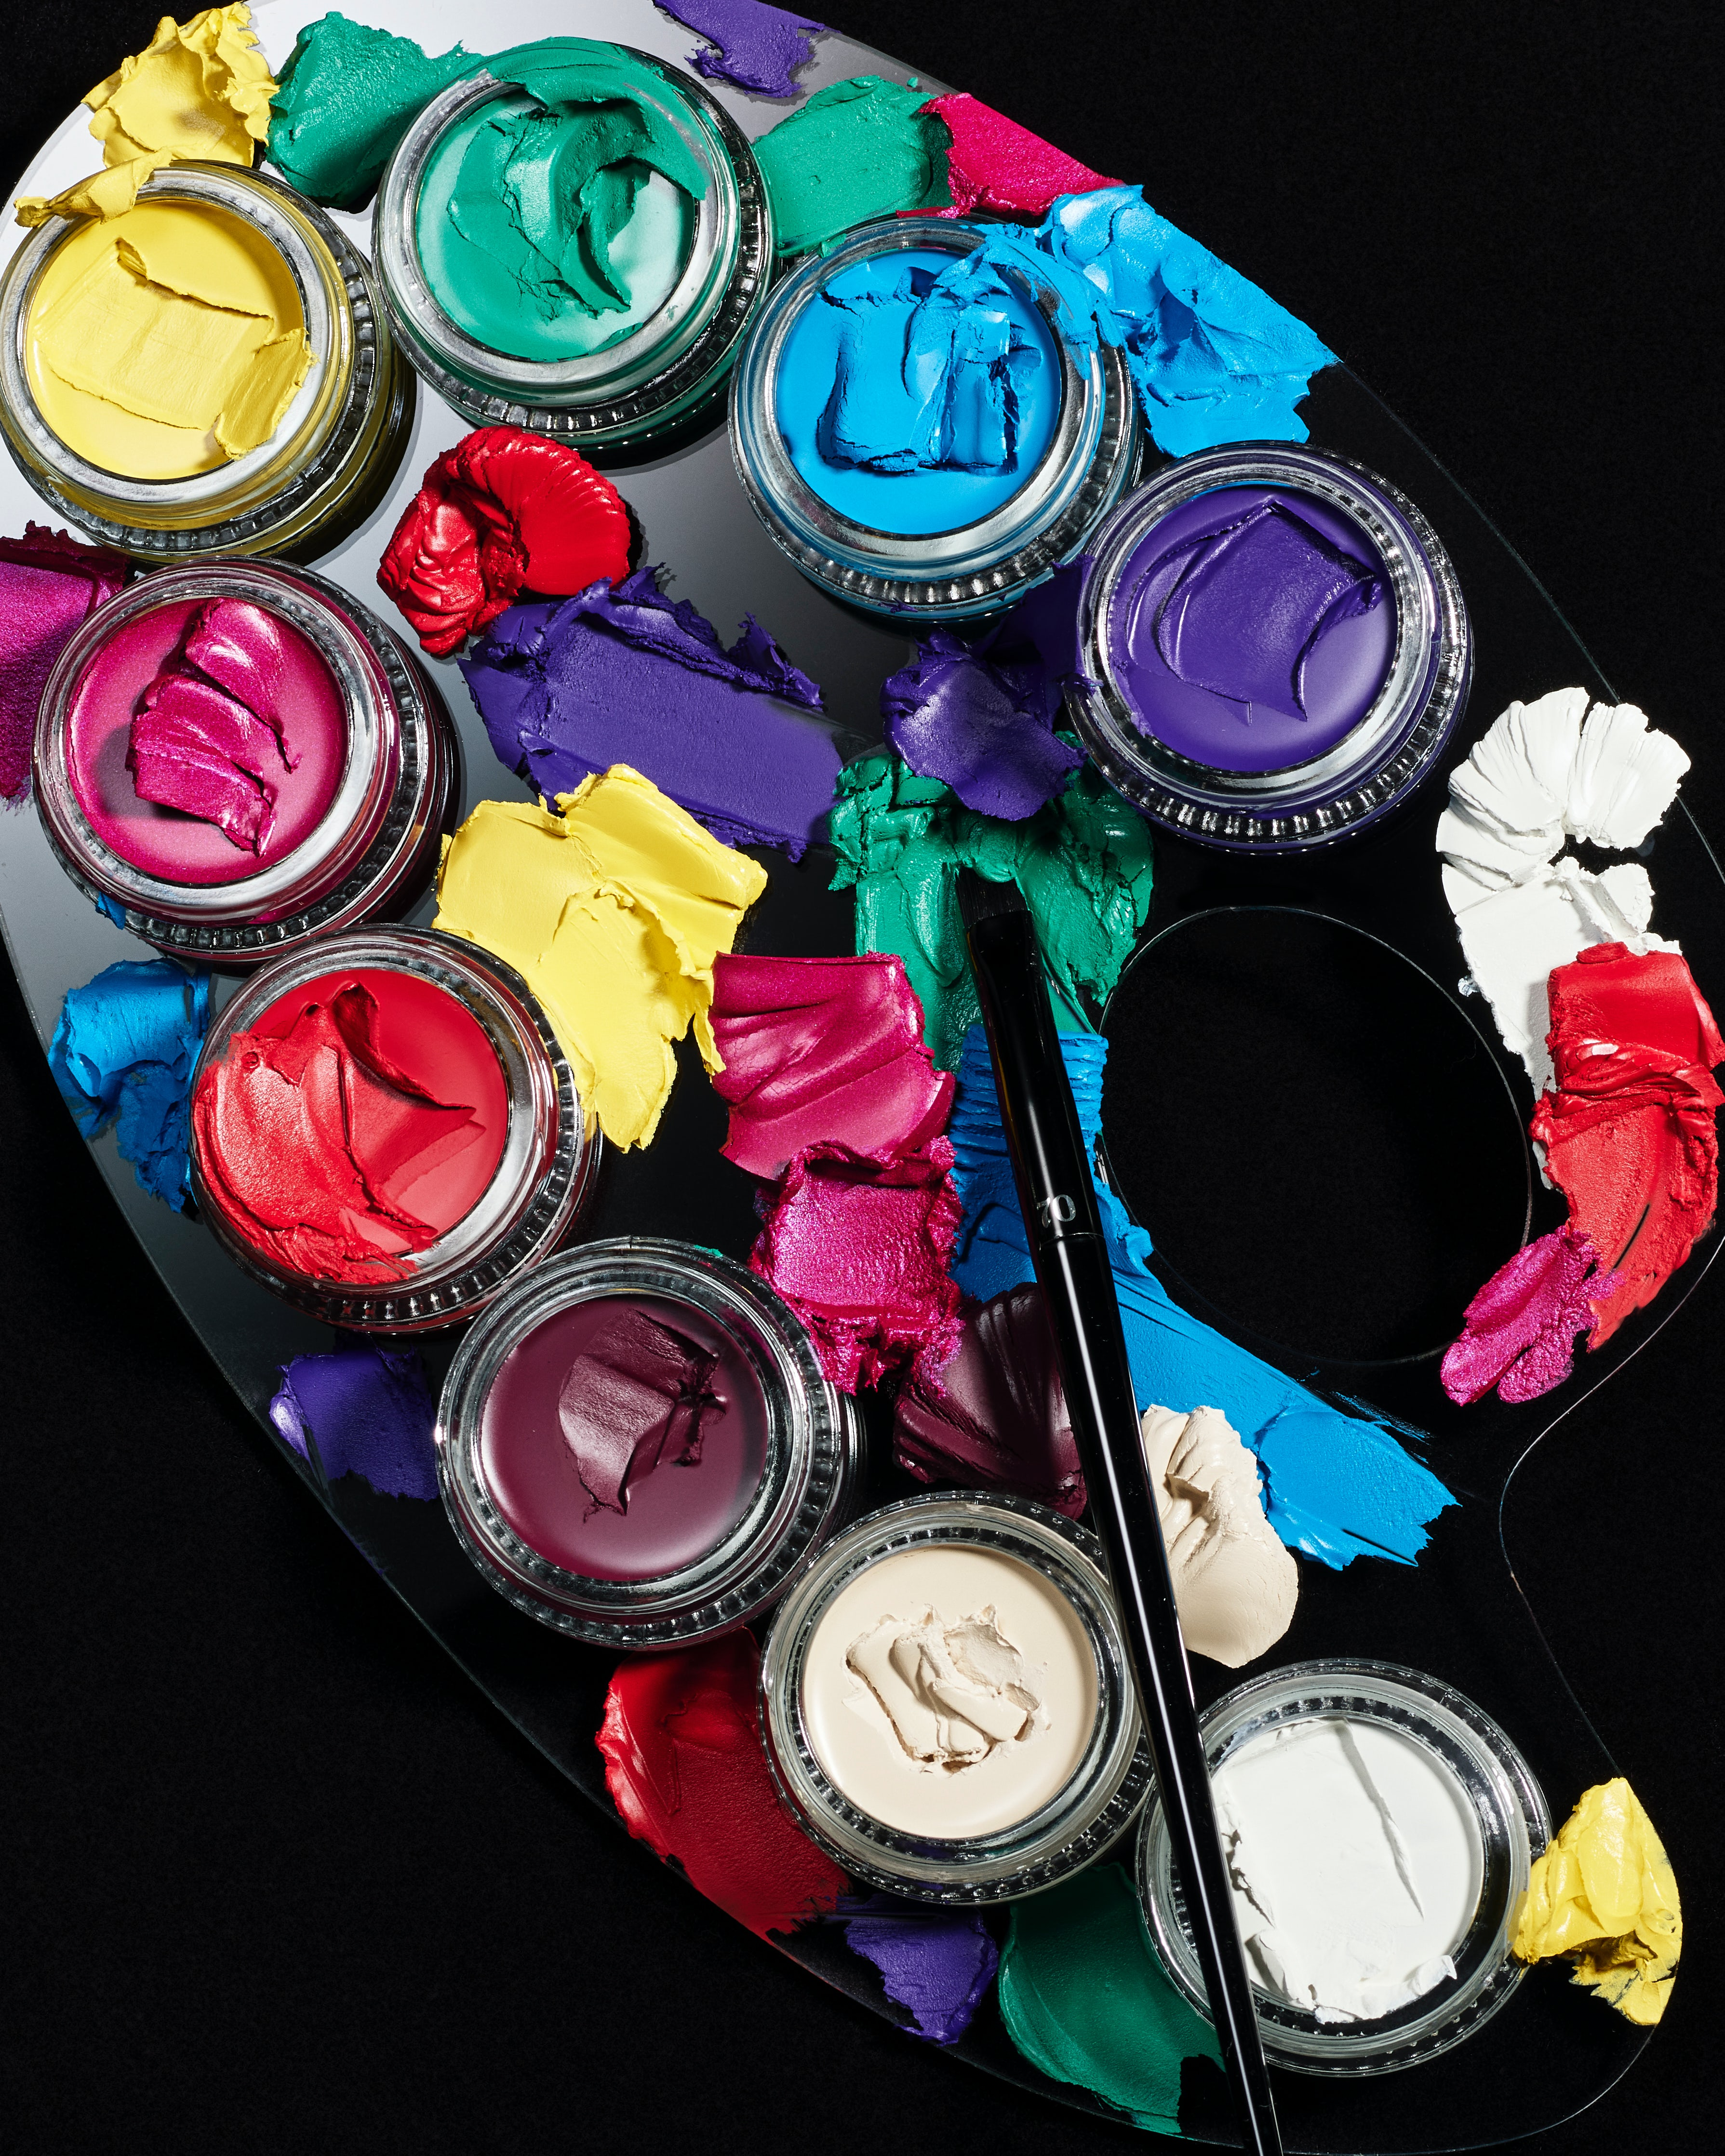 Kendo is betting bold colours and customers loyal to the full-face makeup look will revive KVD Beauty. Source: Courtesy